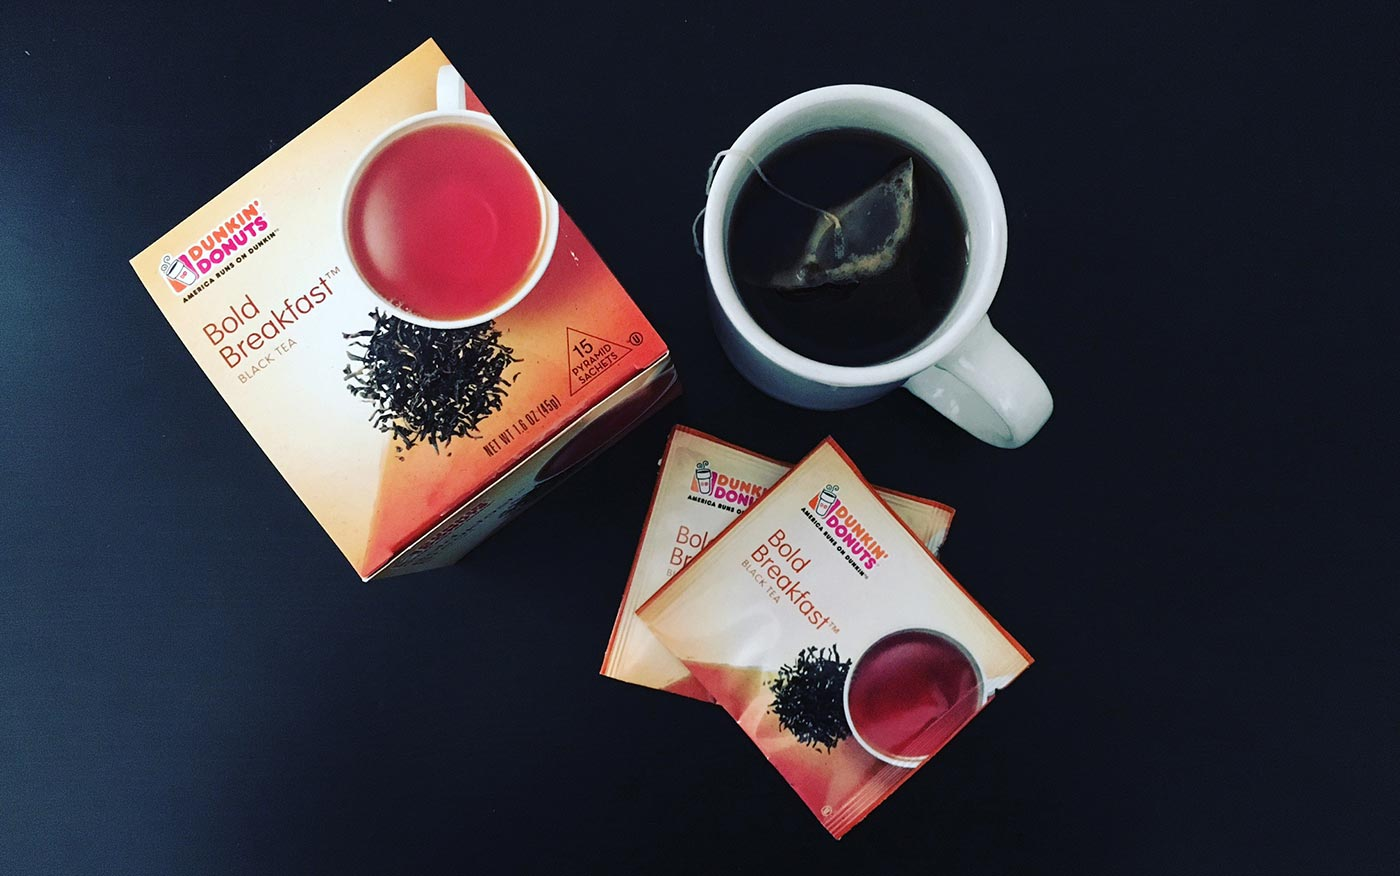 Everyone loves Dunkin' Donuts, but did you know they also feature five new hot tea flavors? See what the new Dunkin' Donuts hot tea selections are about!